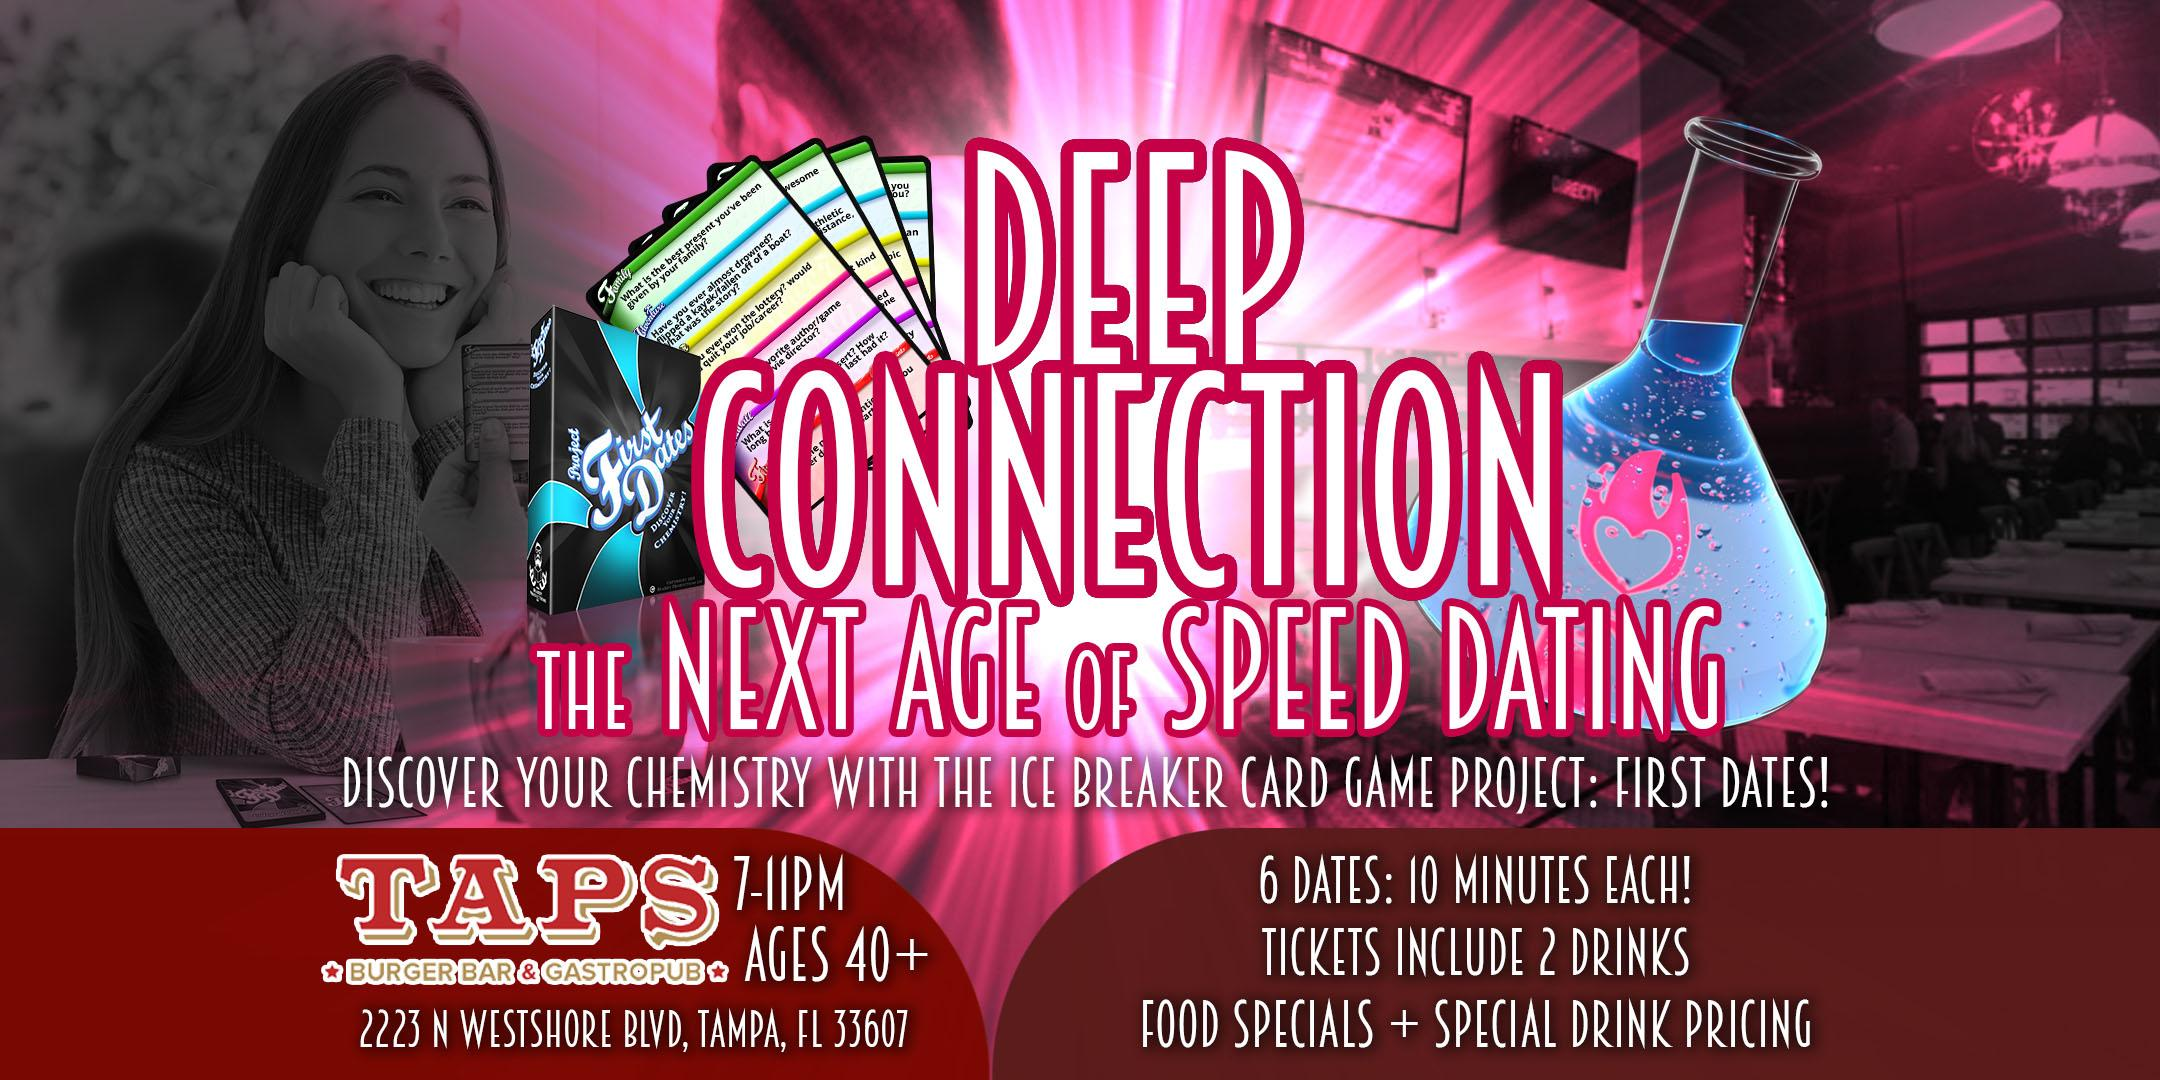 Deep Connection Dating Event- The Next Age of Speed Dating - Ages 40+